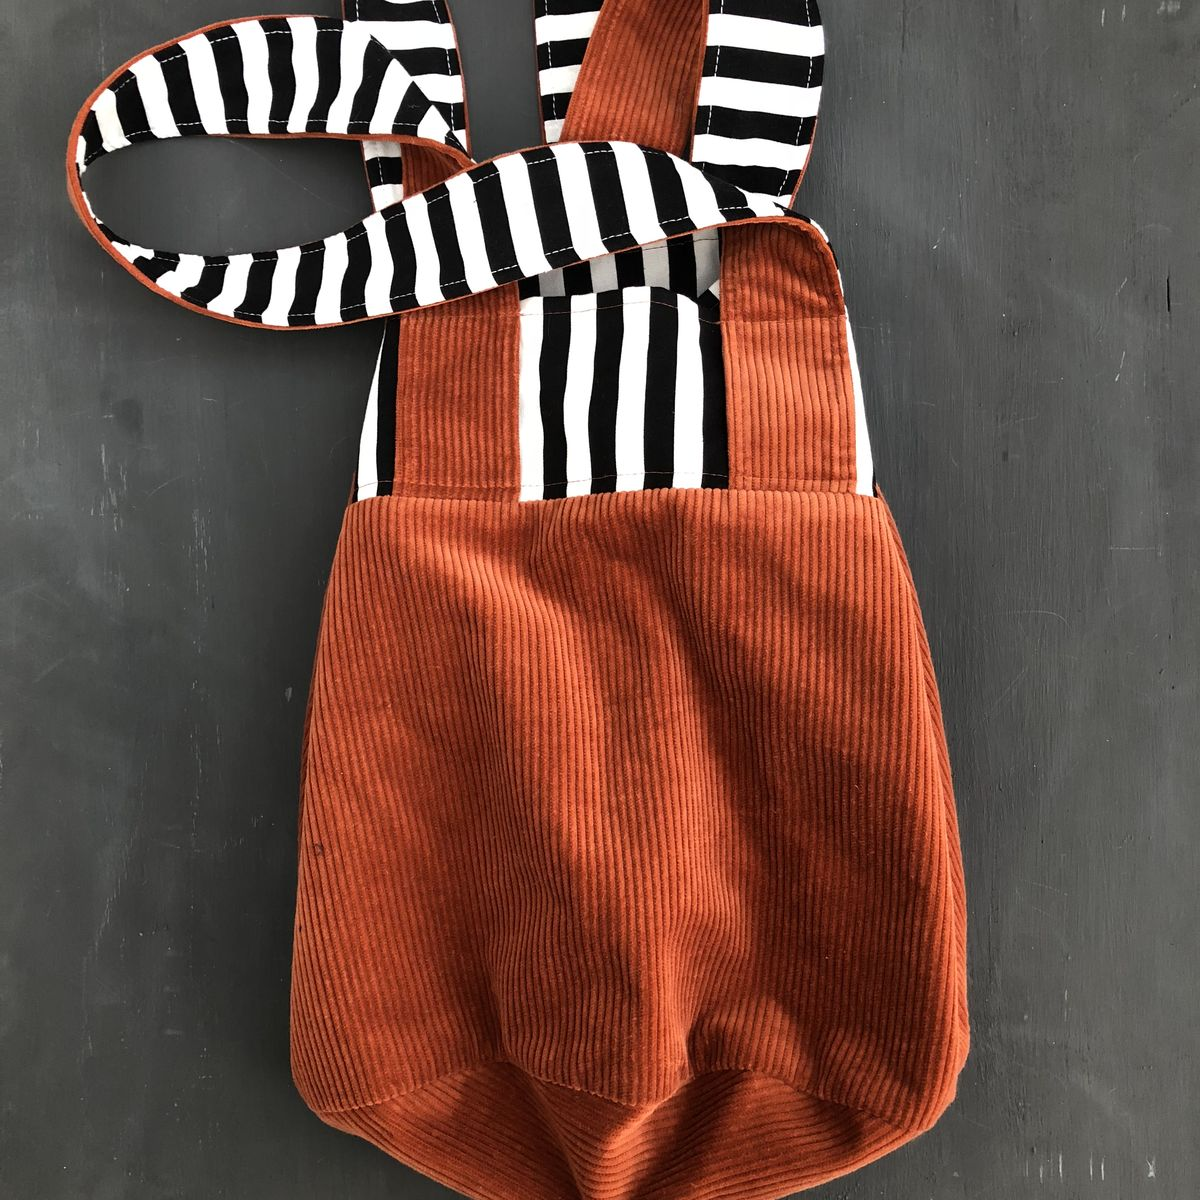 Lined tote shopping bag in copper corduroy with monochrome striped detail - product images  of